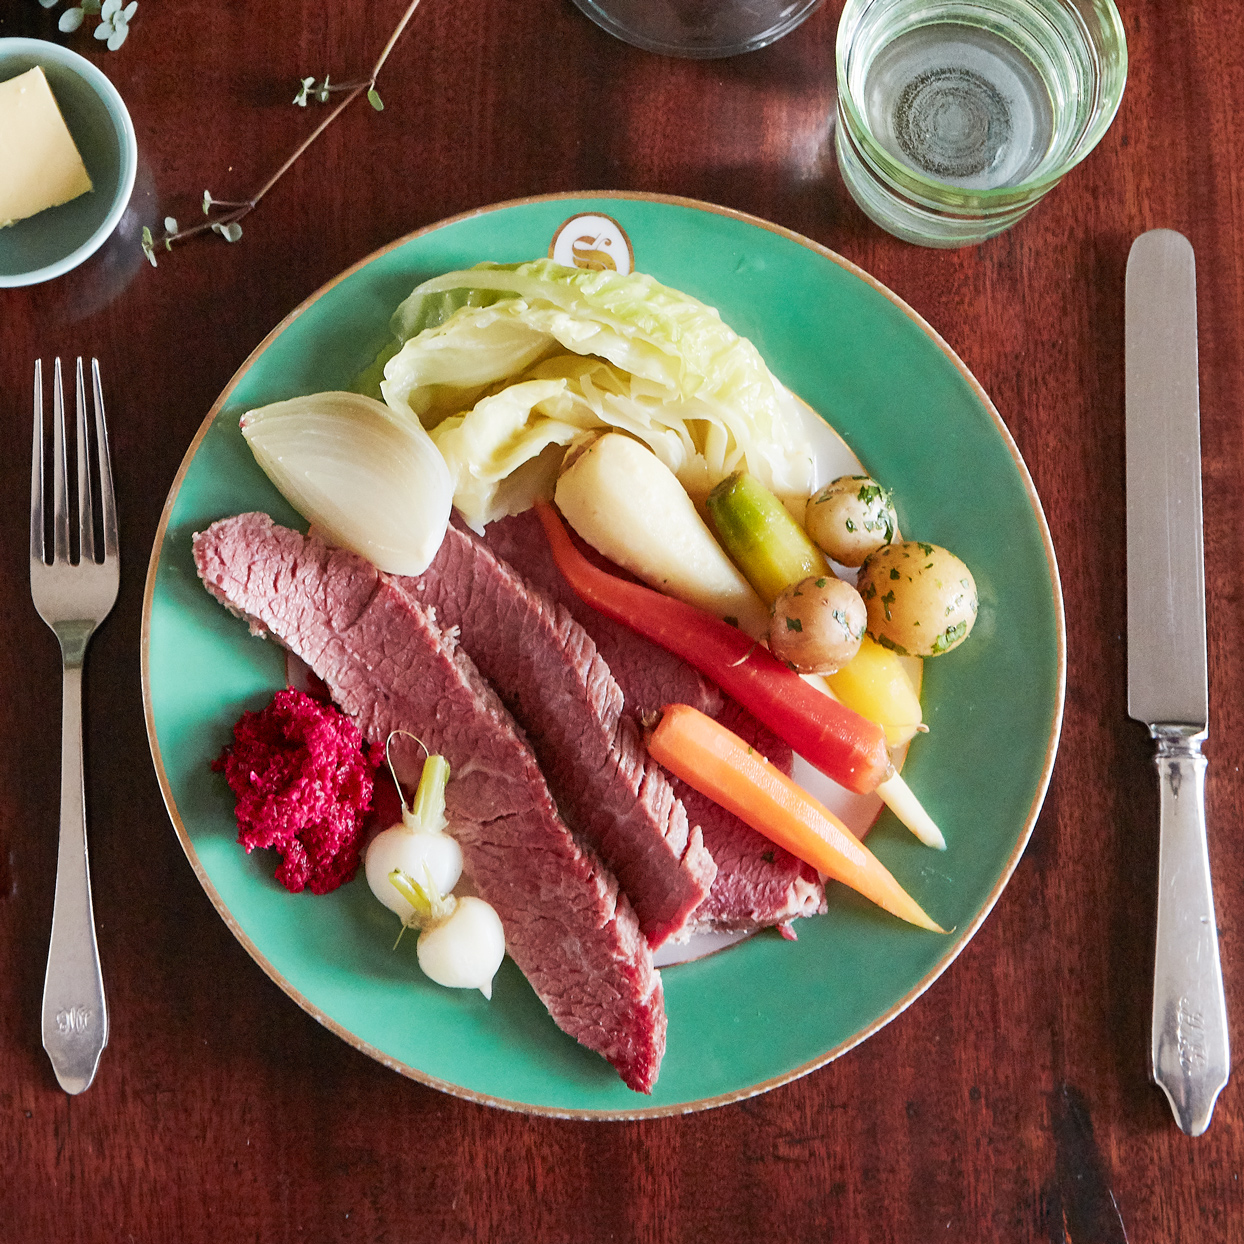 plate of quick-brined corned beef and vegetables